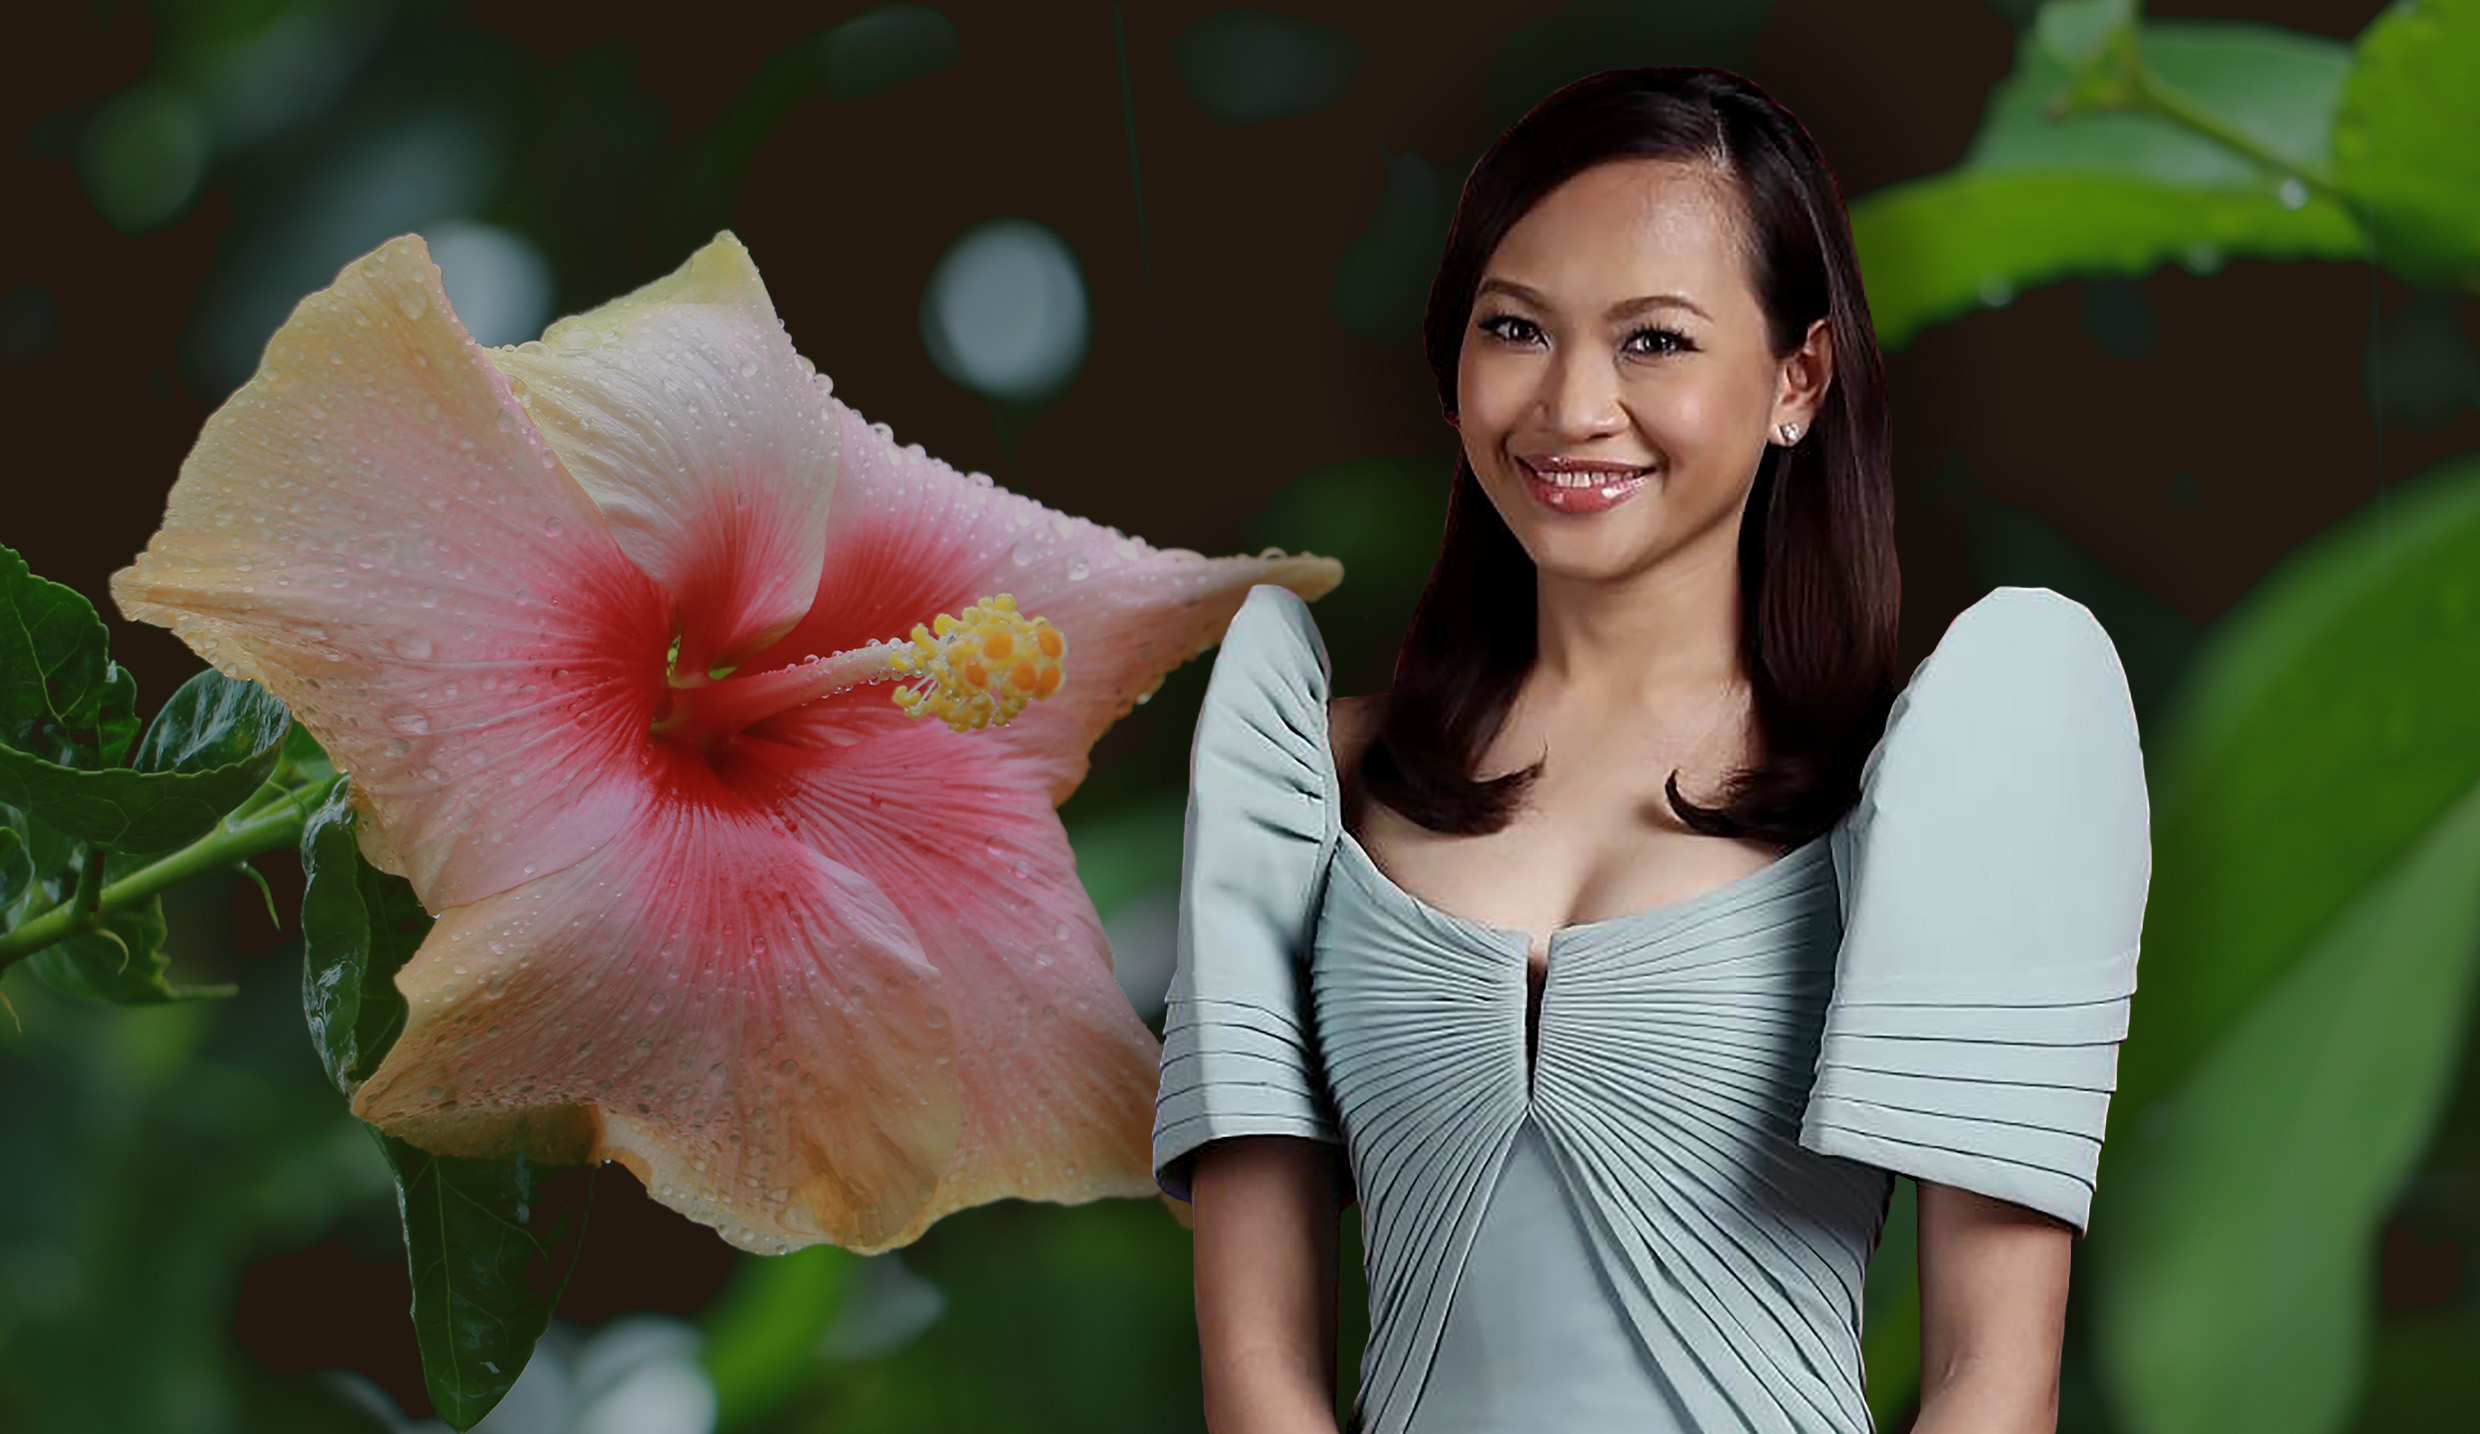 UPLB-bred hibiscus now bears the name of PH justice usec